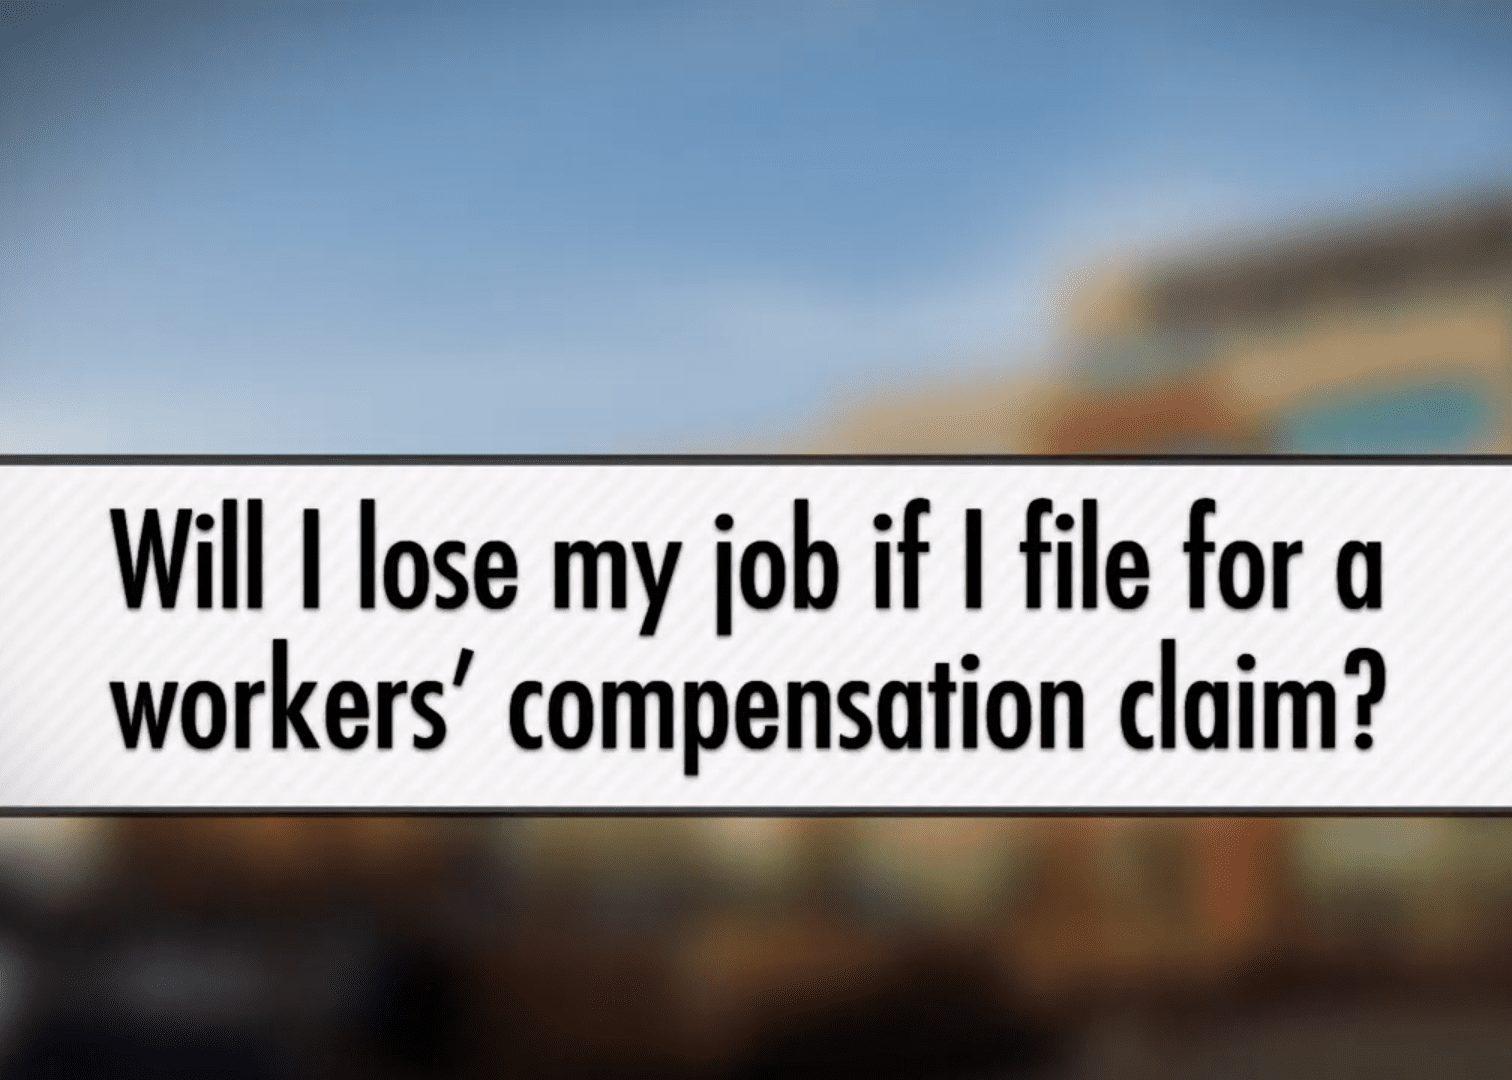 Will I lose my job if I file for a workers' compensation claim